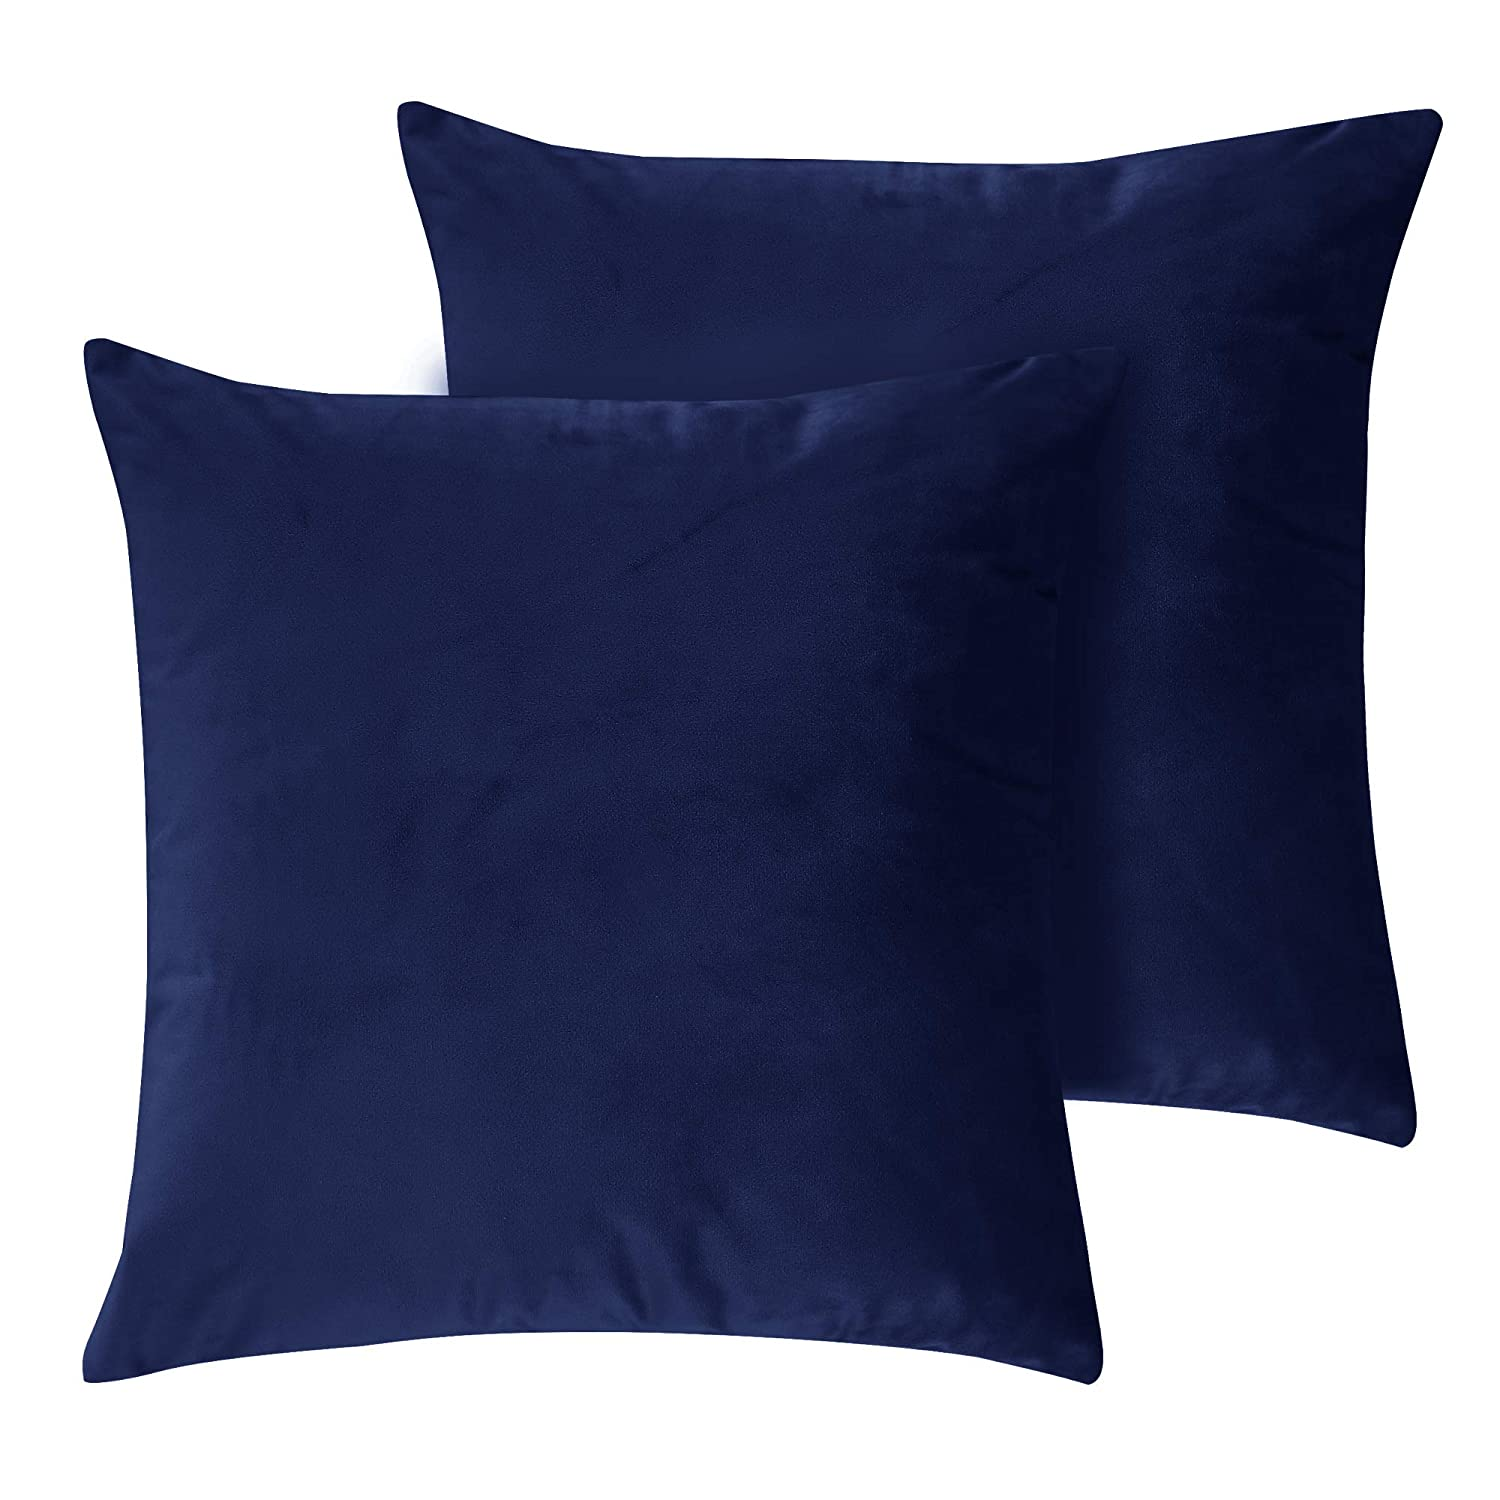 Deconovo Set of 2 Home Decorative Wine Pillowcases Cushion protectors Crushed Velvet Cushion Covers for Sofas Seats with Invisible Zipper Wine 40x40cm